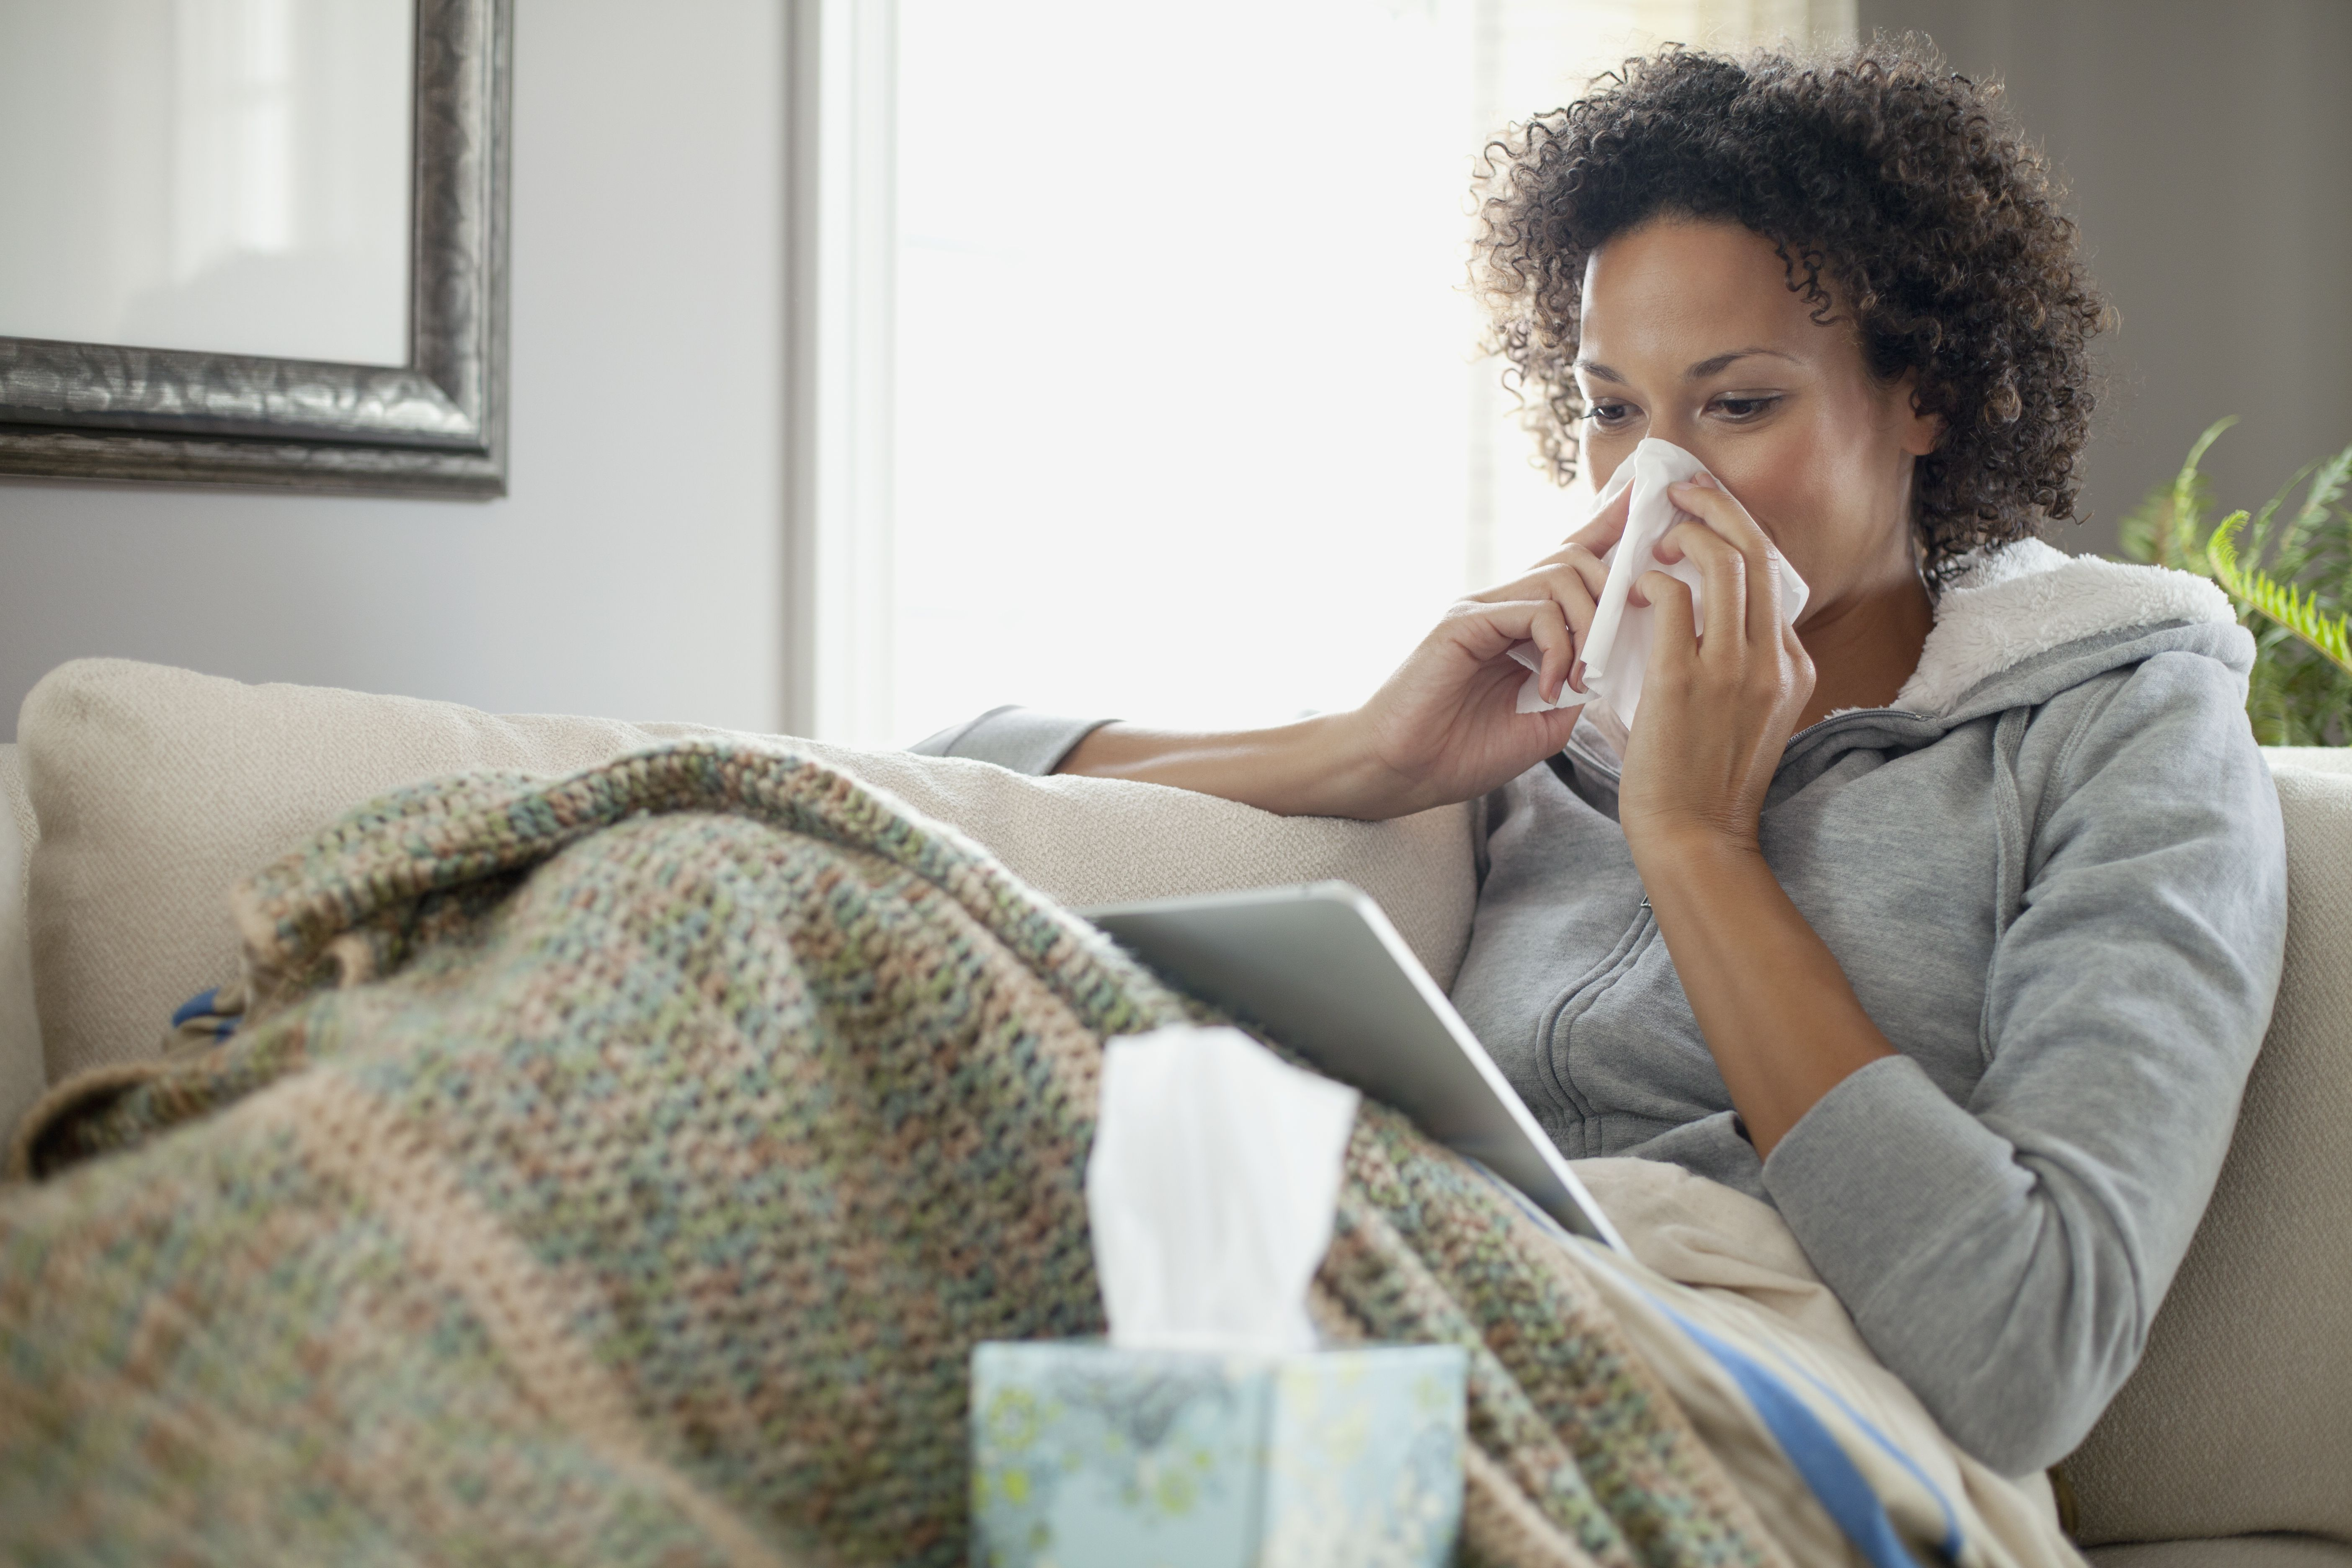 Sample Sickness Absence Excuse Letters and Emails